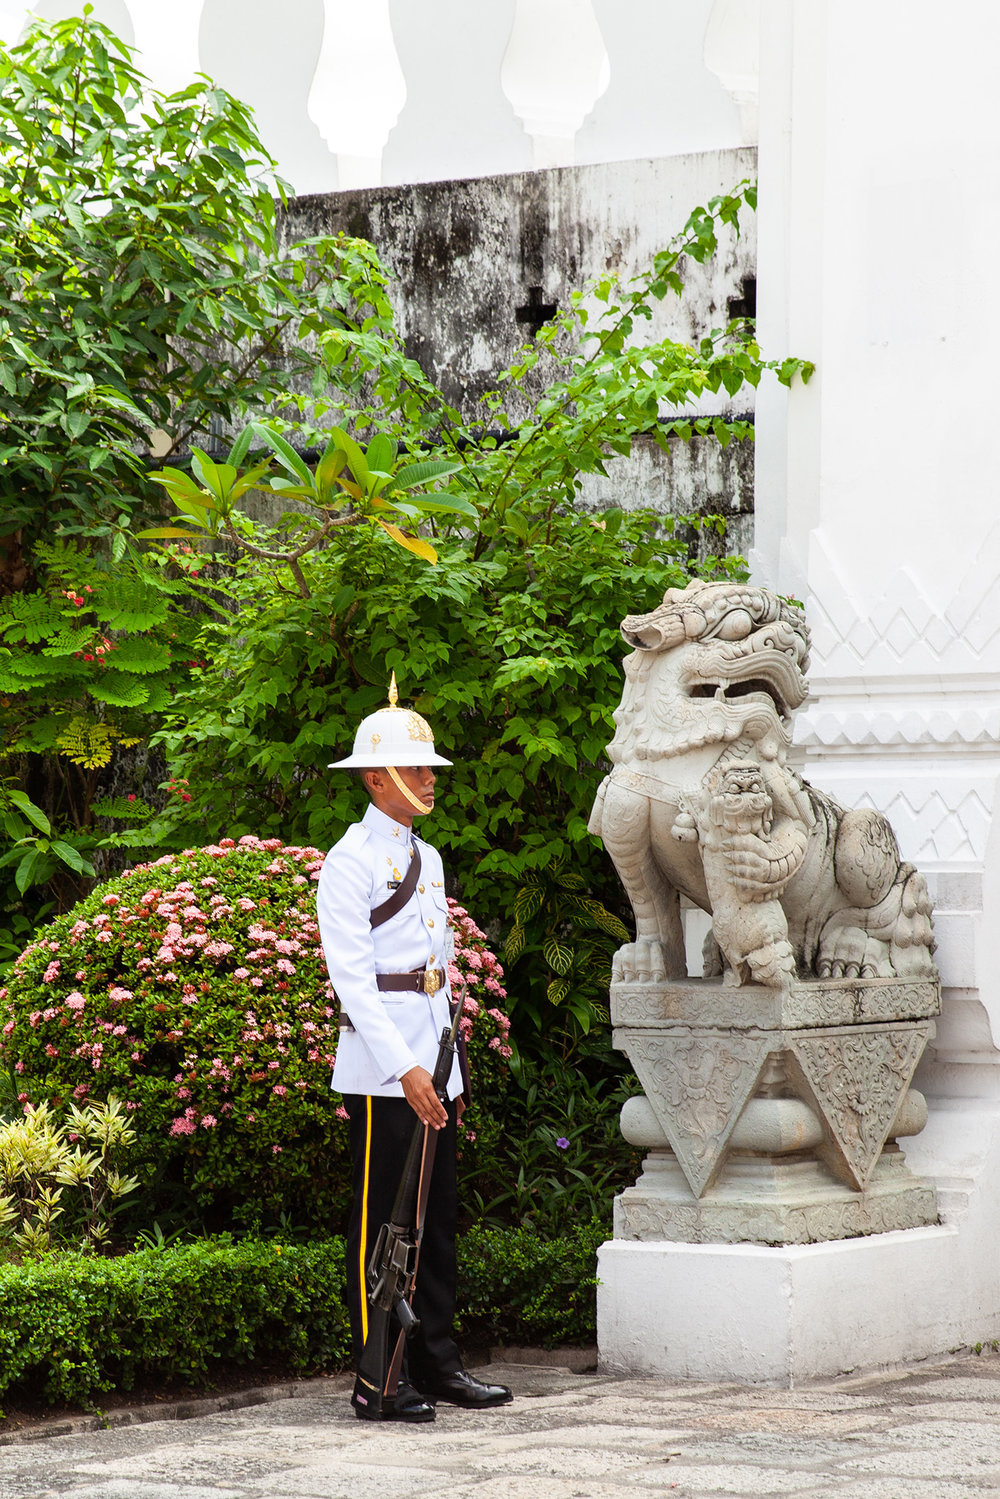 A guard keep watch inside the Grand Palace